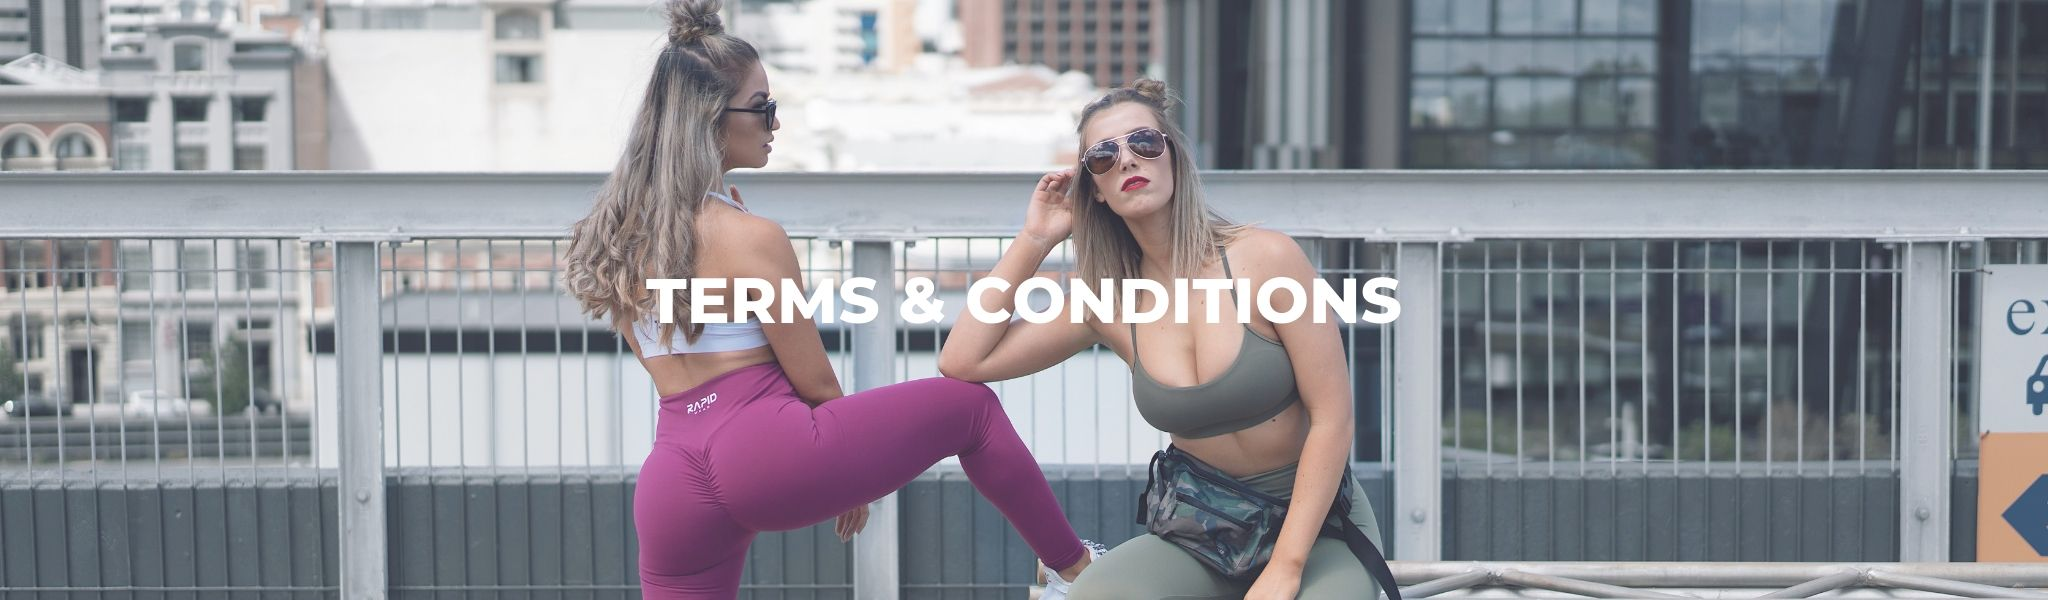 Terms and conditions fitfashion